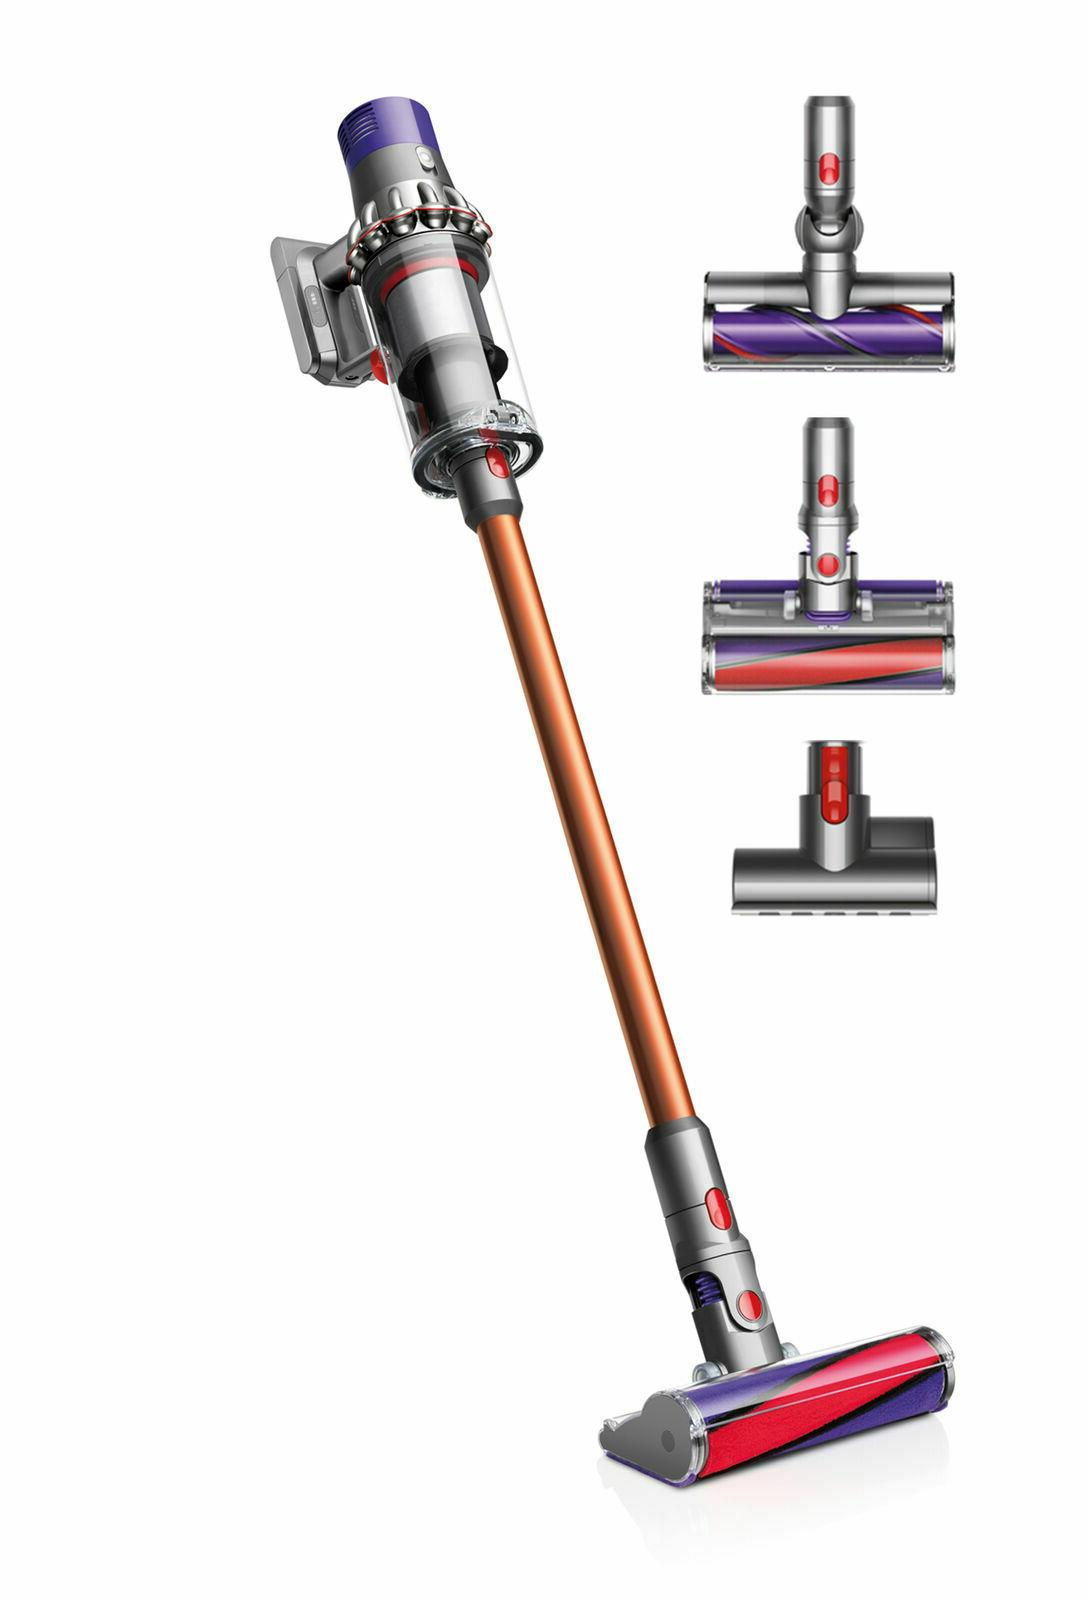 cyclone v10 absolute pro wireless vacuum cleaner